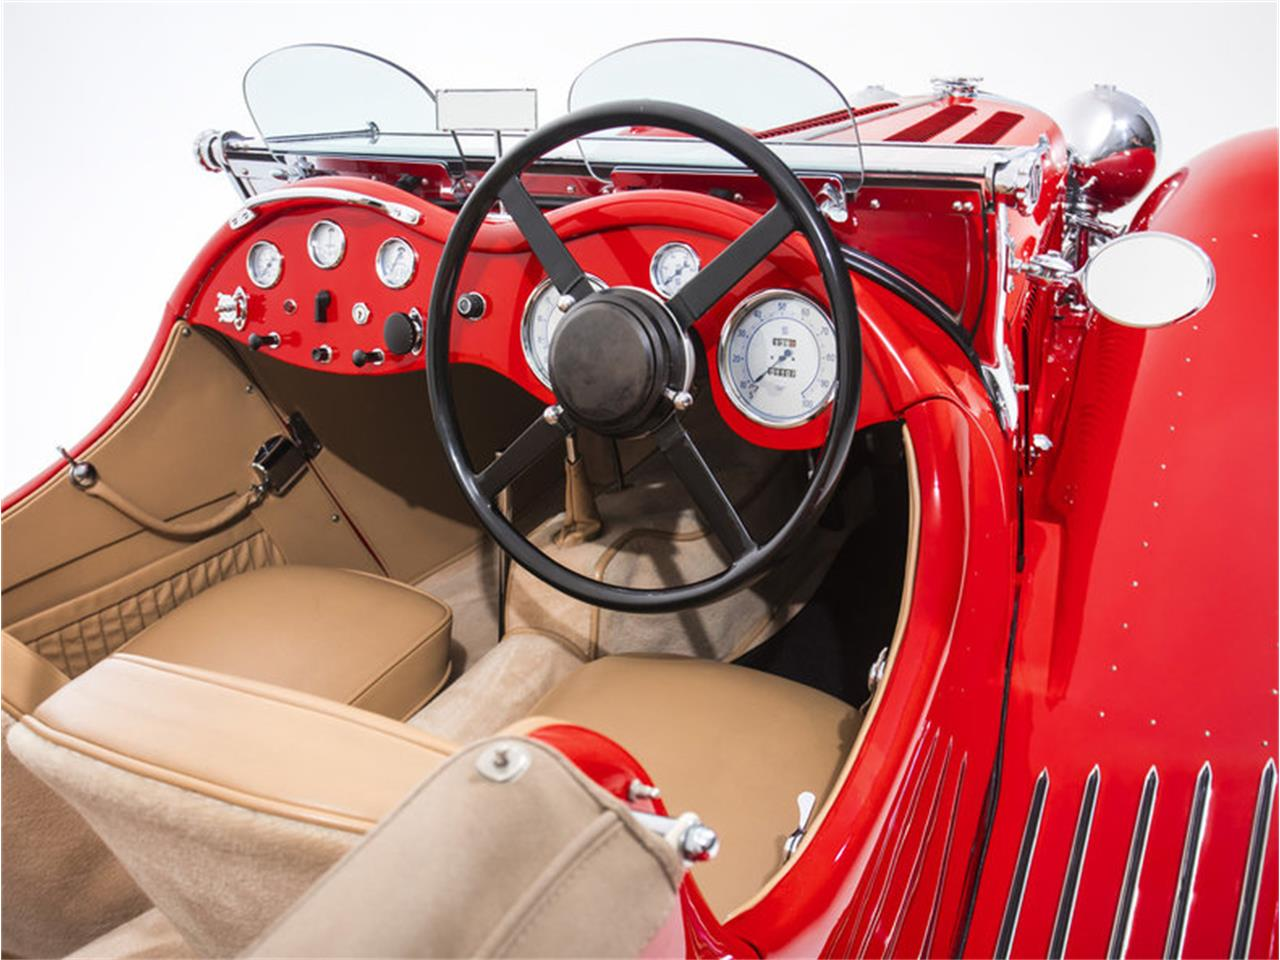 Large Picture of 1938 SS100 located in Newport Beach California - $349,000.00 Offered by Morris and Welford - MZA7